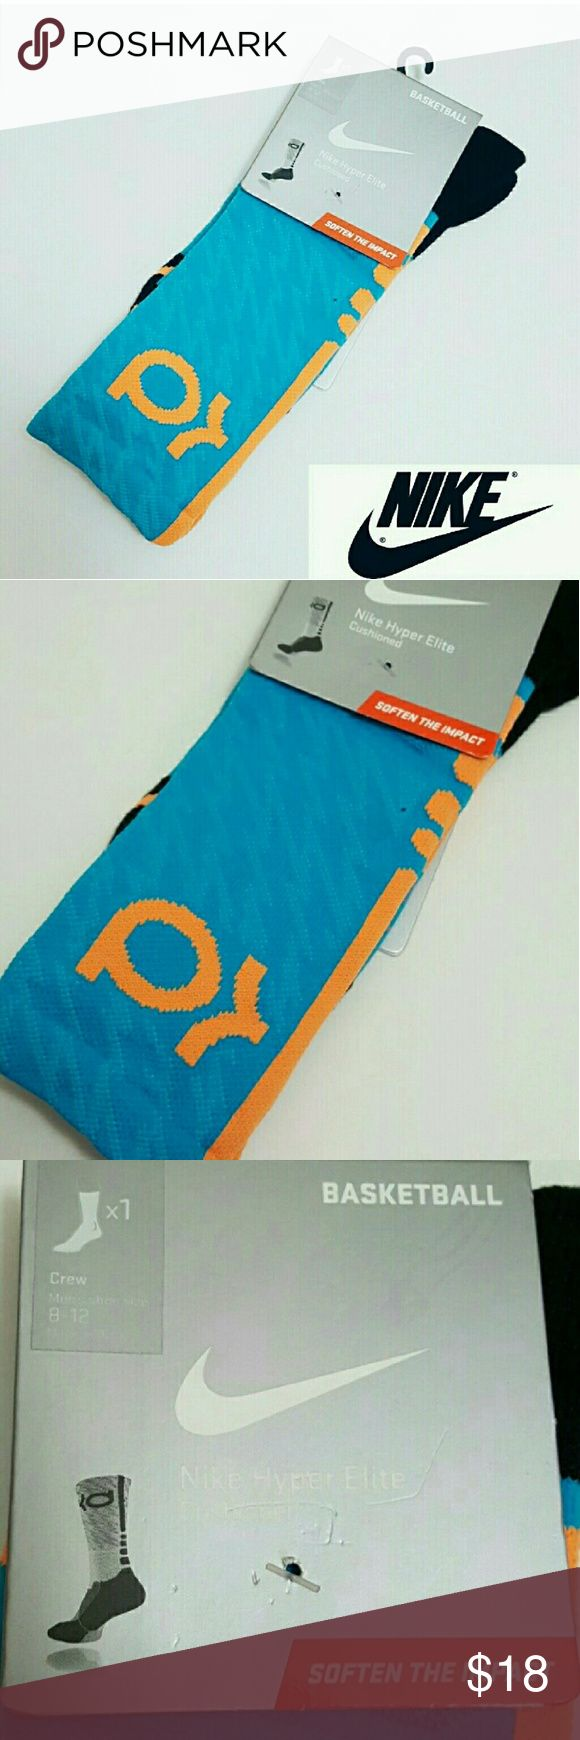 New! Nike KD basketball mens socks New with tags! Nike men's KD socks, fits men's shoe size 8-12.  Offers welcome. Nike Accessories